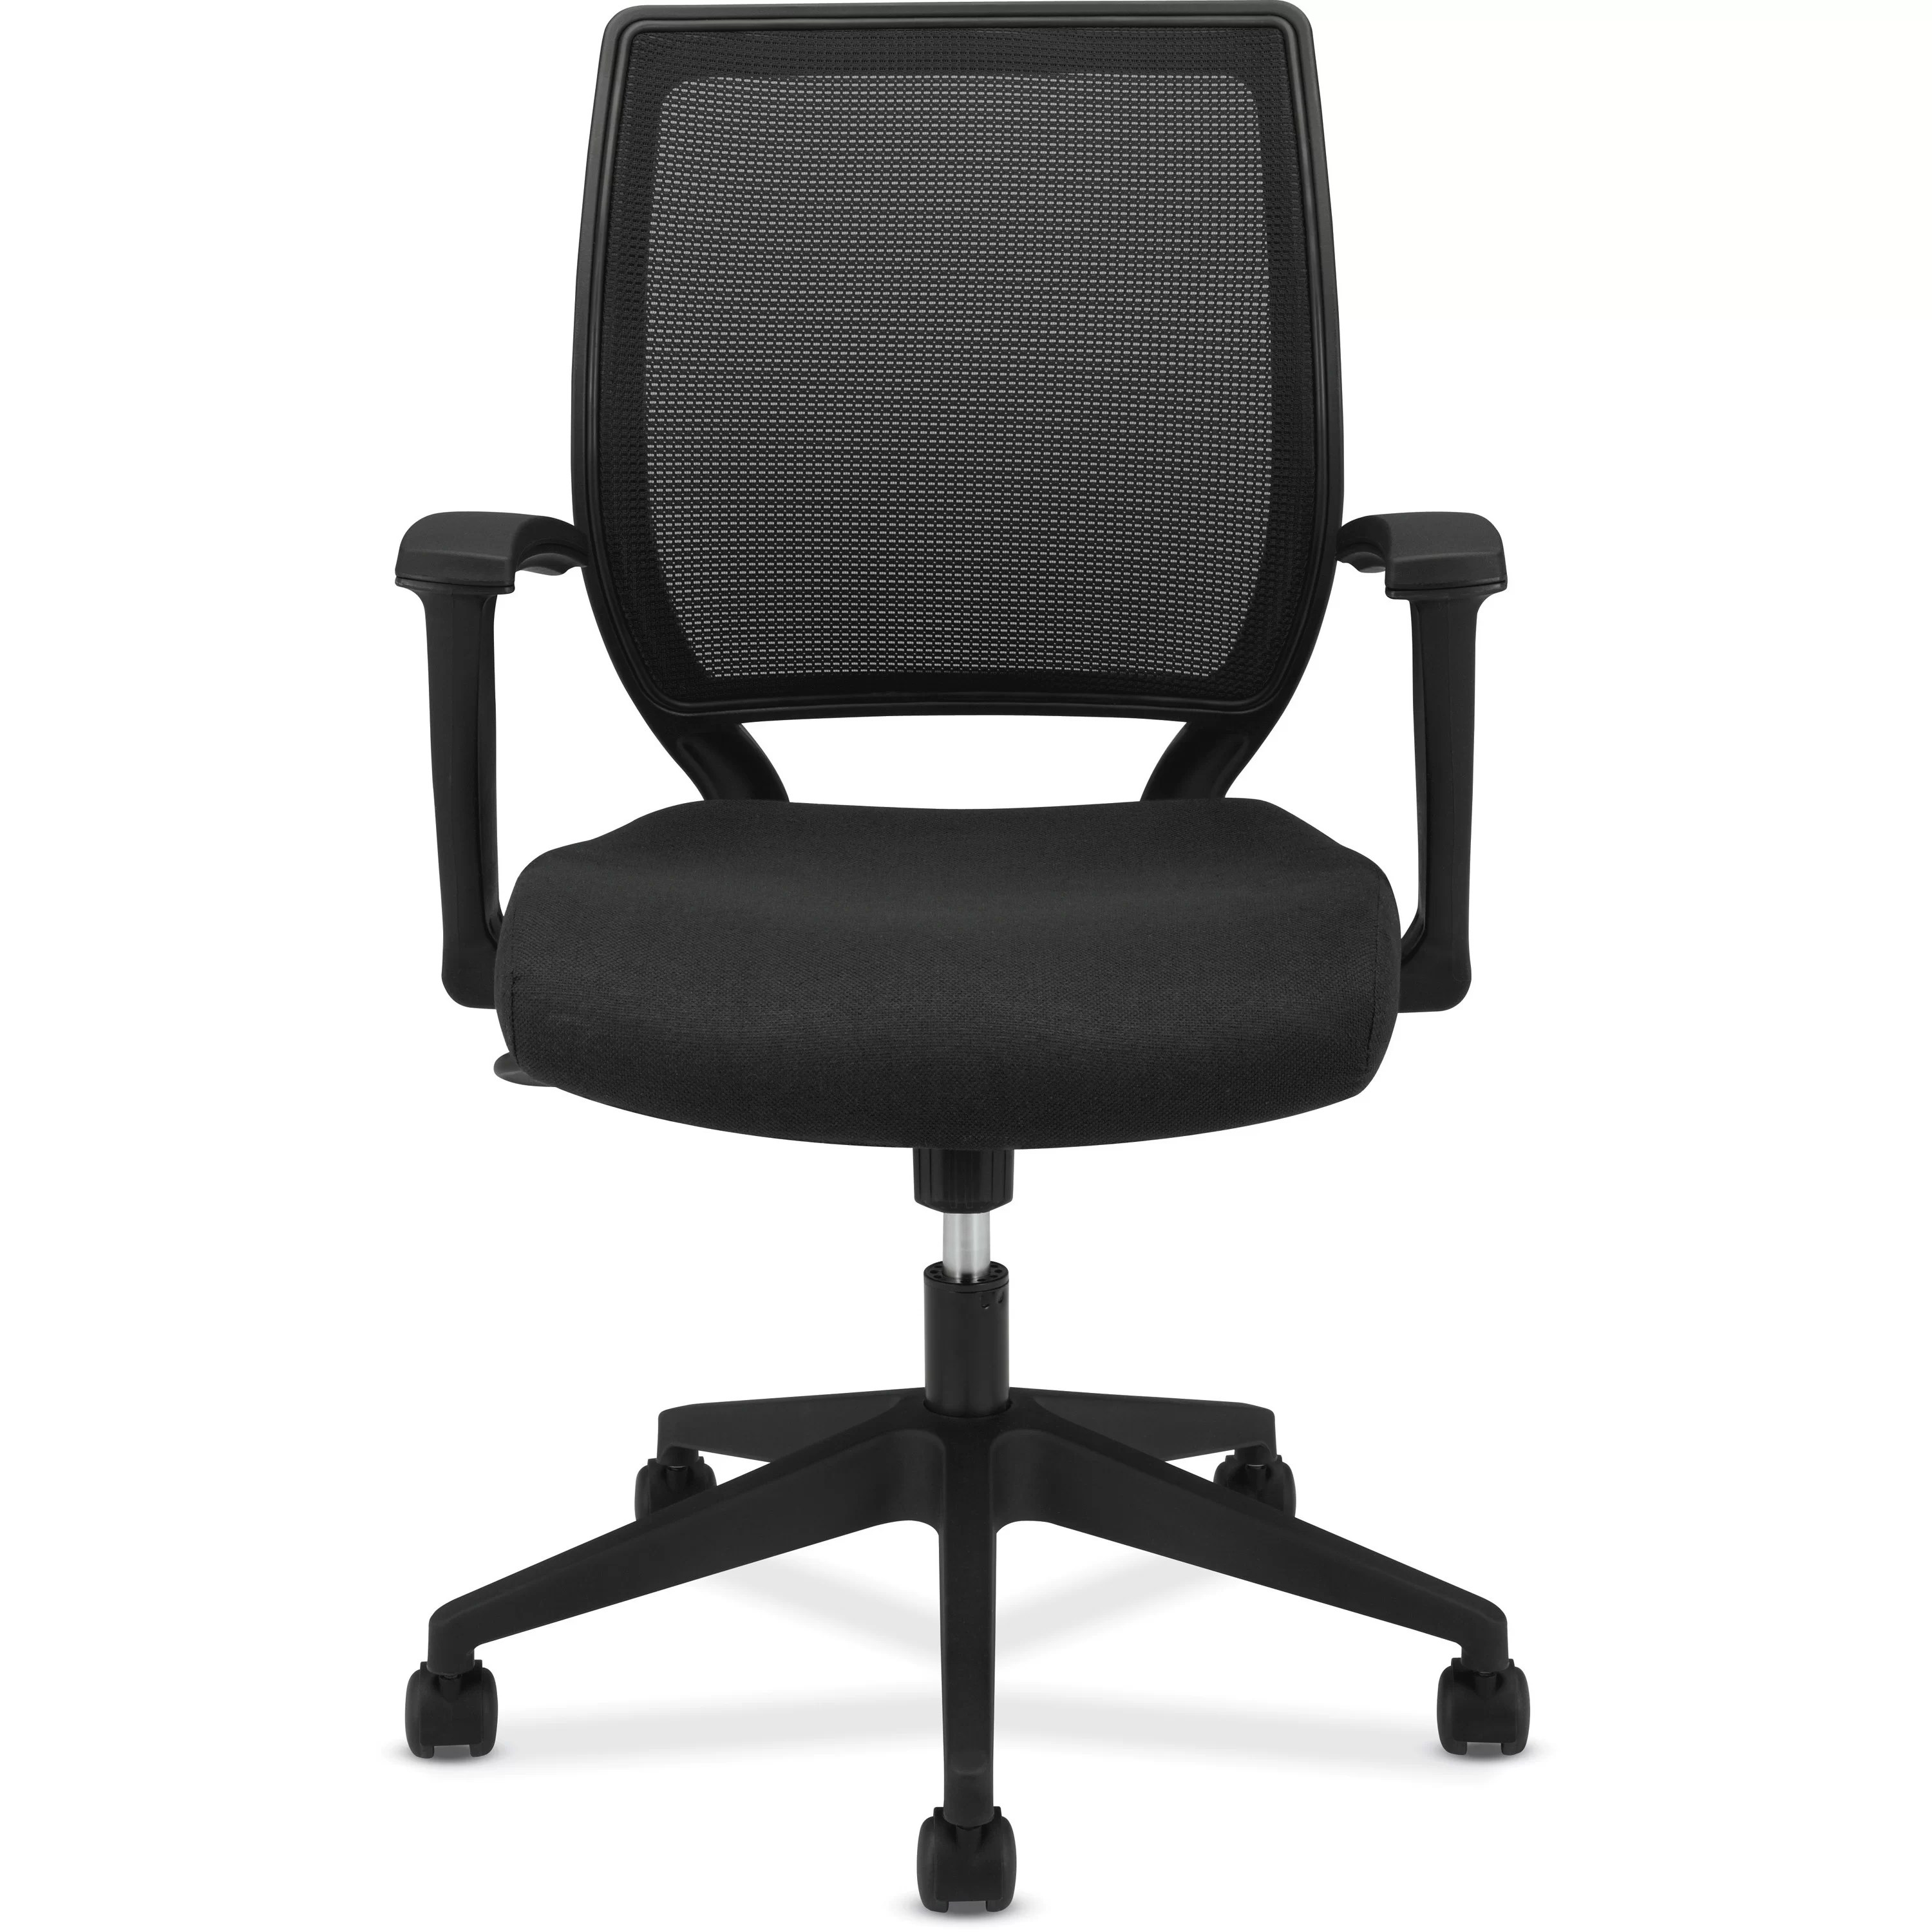 Work Chair Basyx Vl521 Mid Back Work Chair And Reviews Wayfair